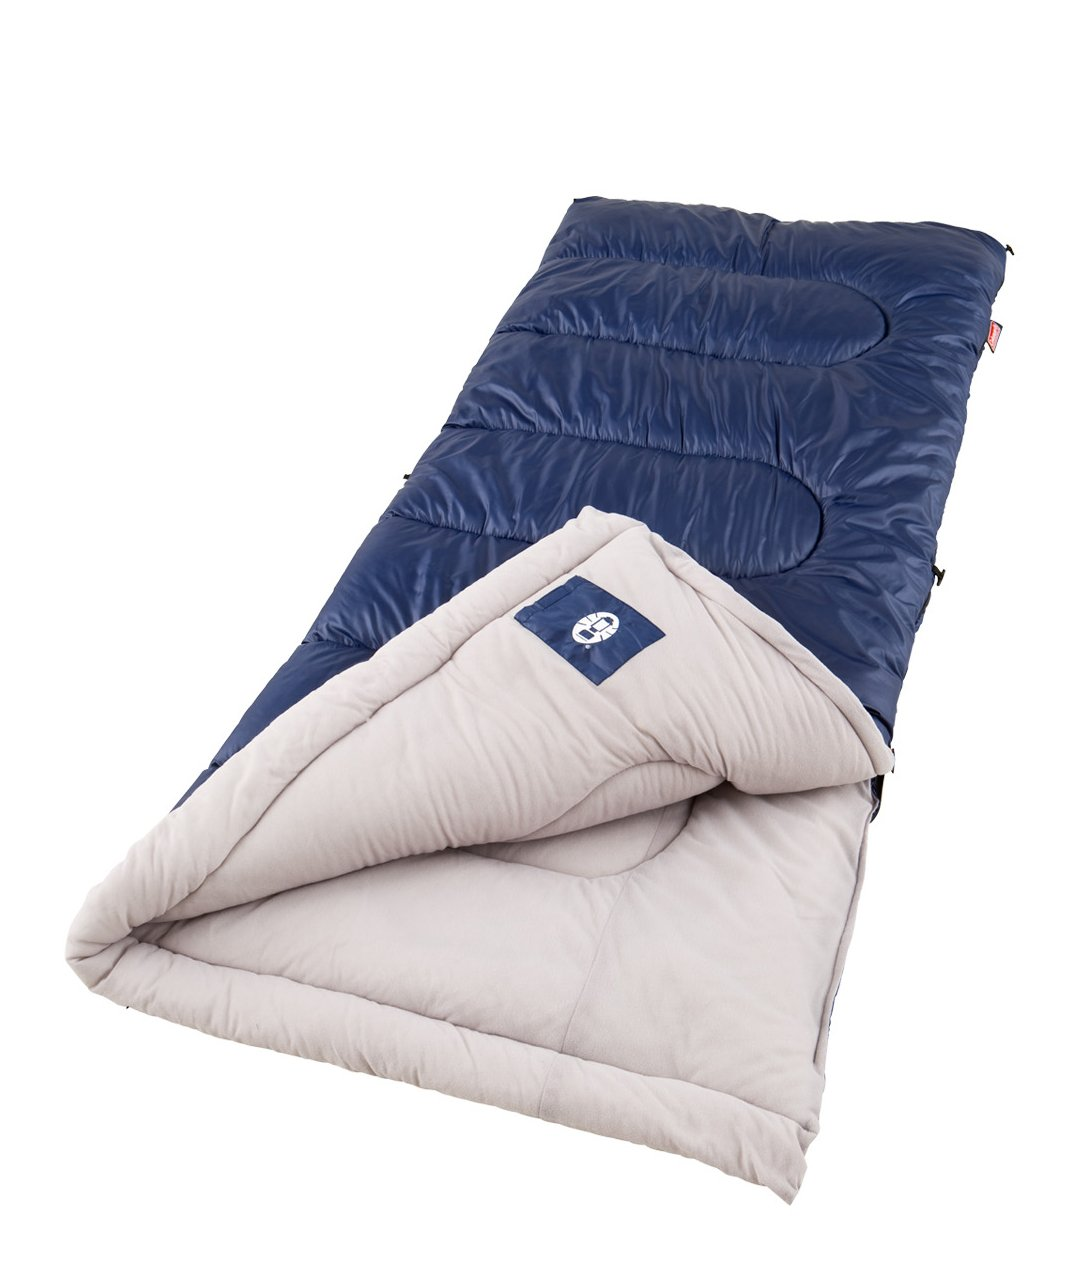 $21.91 (was $51) Coleman Brazos Cold Weather Sleeping Bag